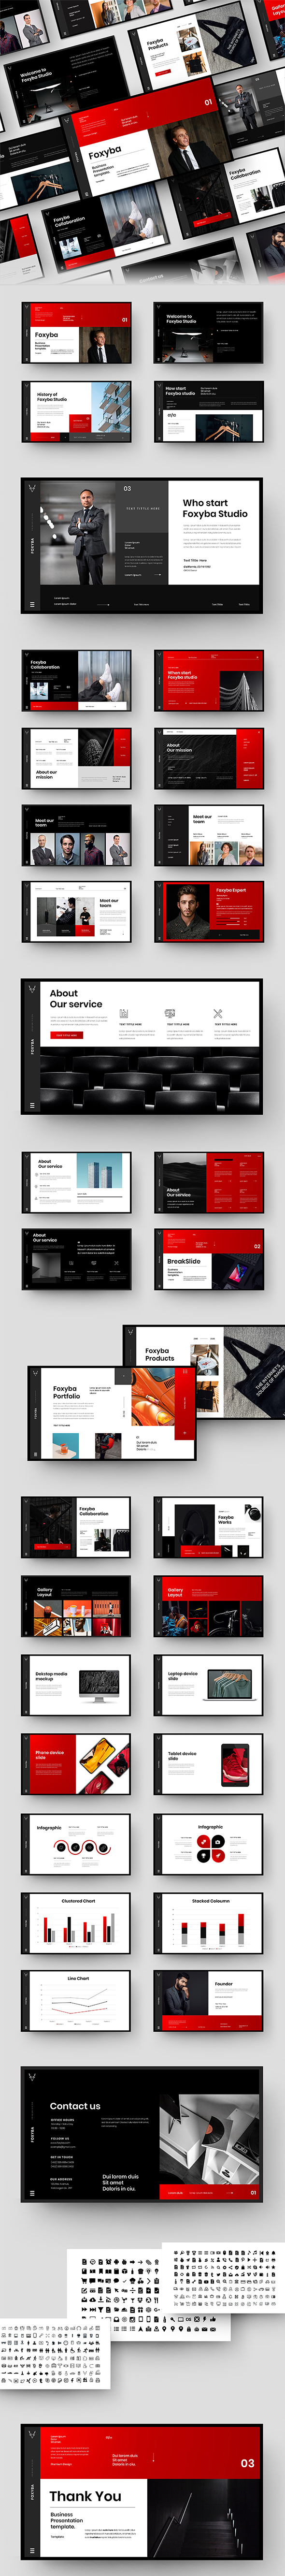 Foxyba – Business PowerPoint Template